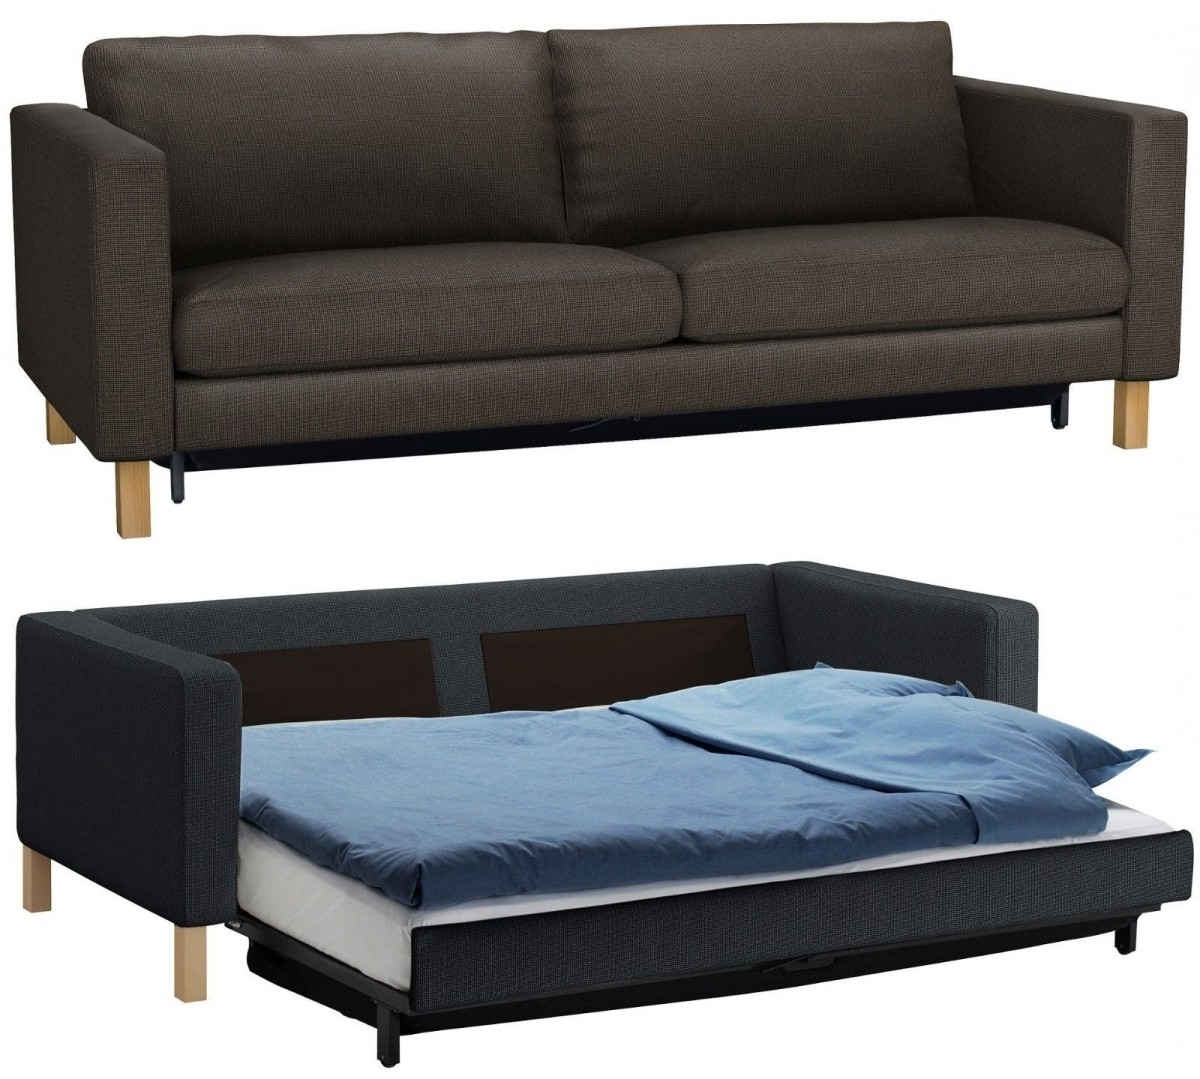 About The Ikea Sleeper Sofa : S3Net – Sectional Sofas Sale Pertaining To Most Current Ikea Sectional Sleeper Sofas (View 9 of 15)